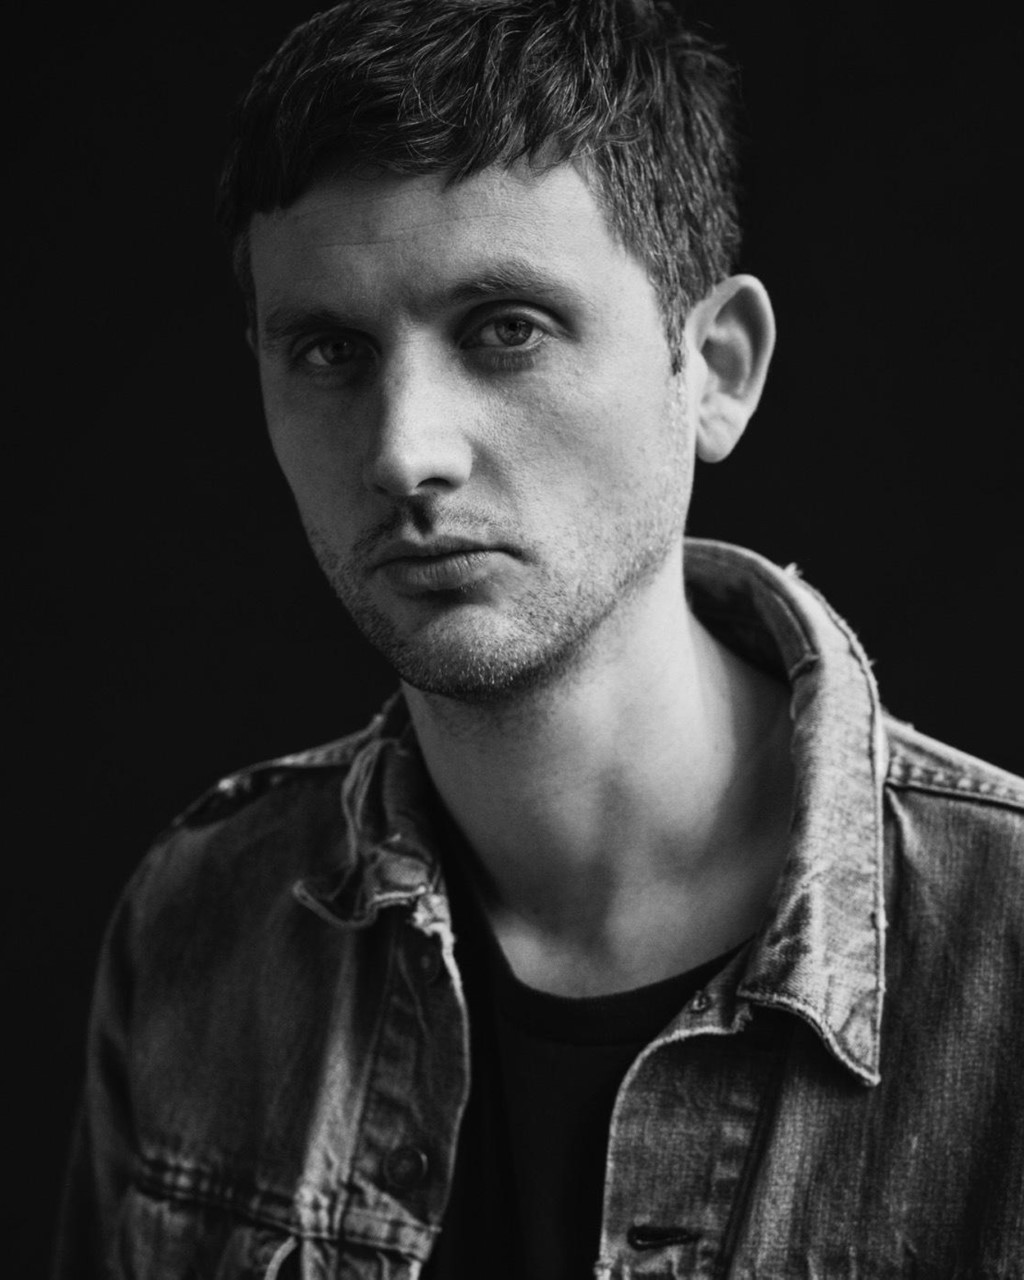 Wil Beedle is leaving AllSaints to focus on his brand Shoreditch Ski Club.